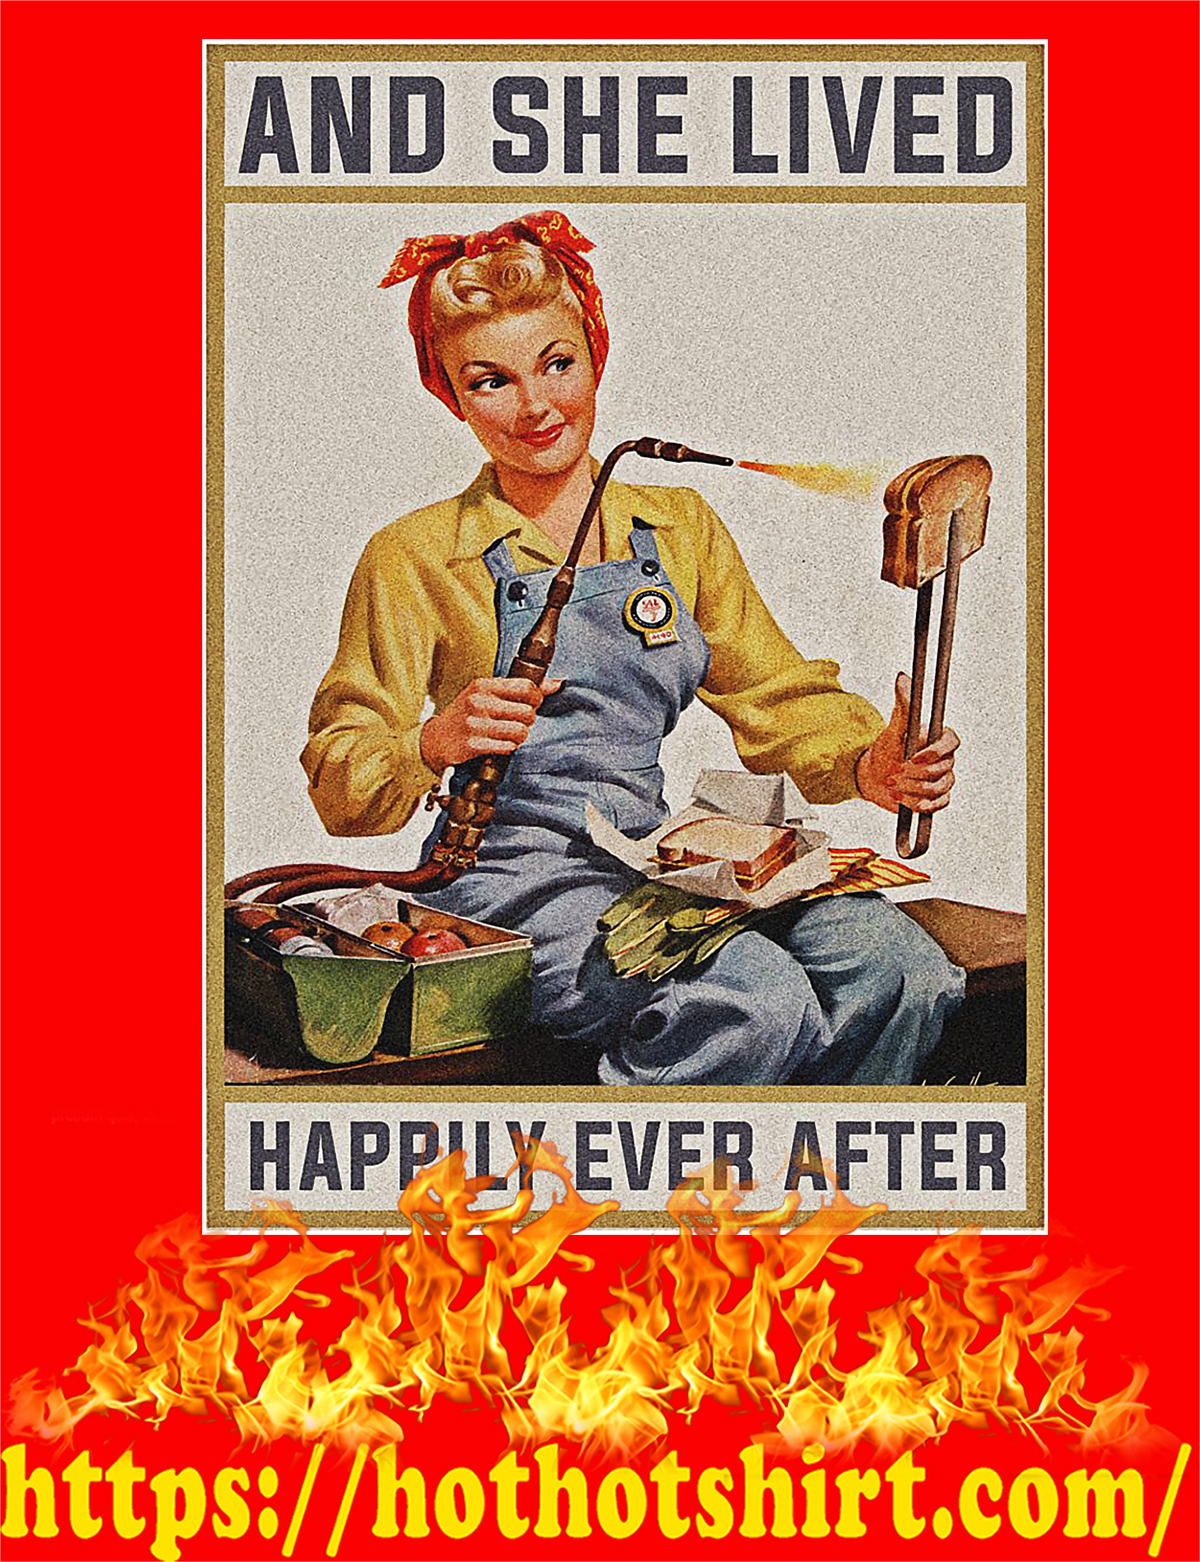 Welder woman And she lived happily ever after poster - A2